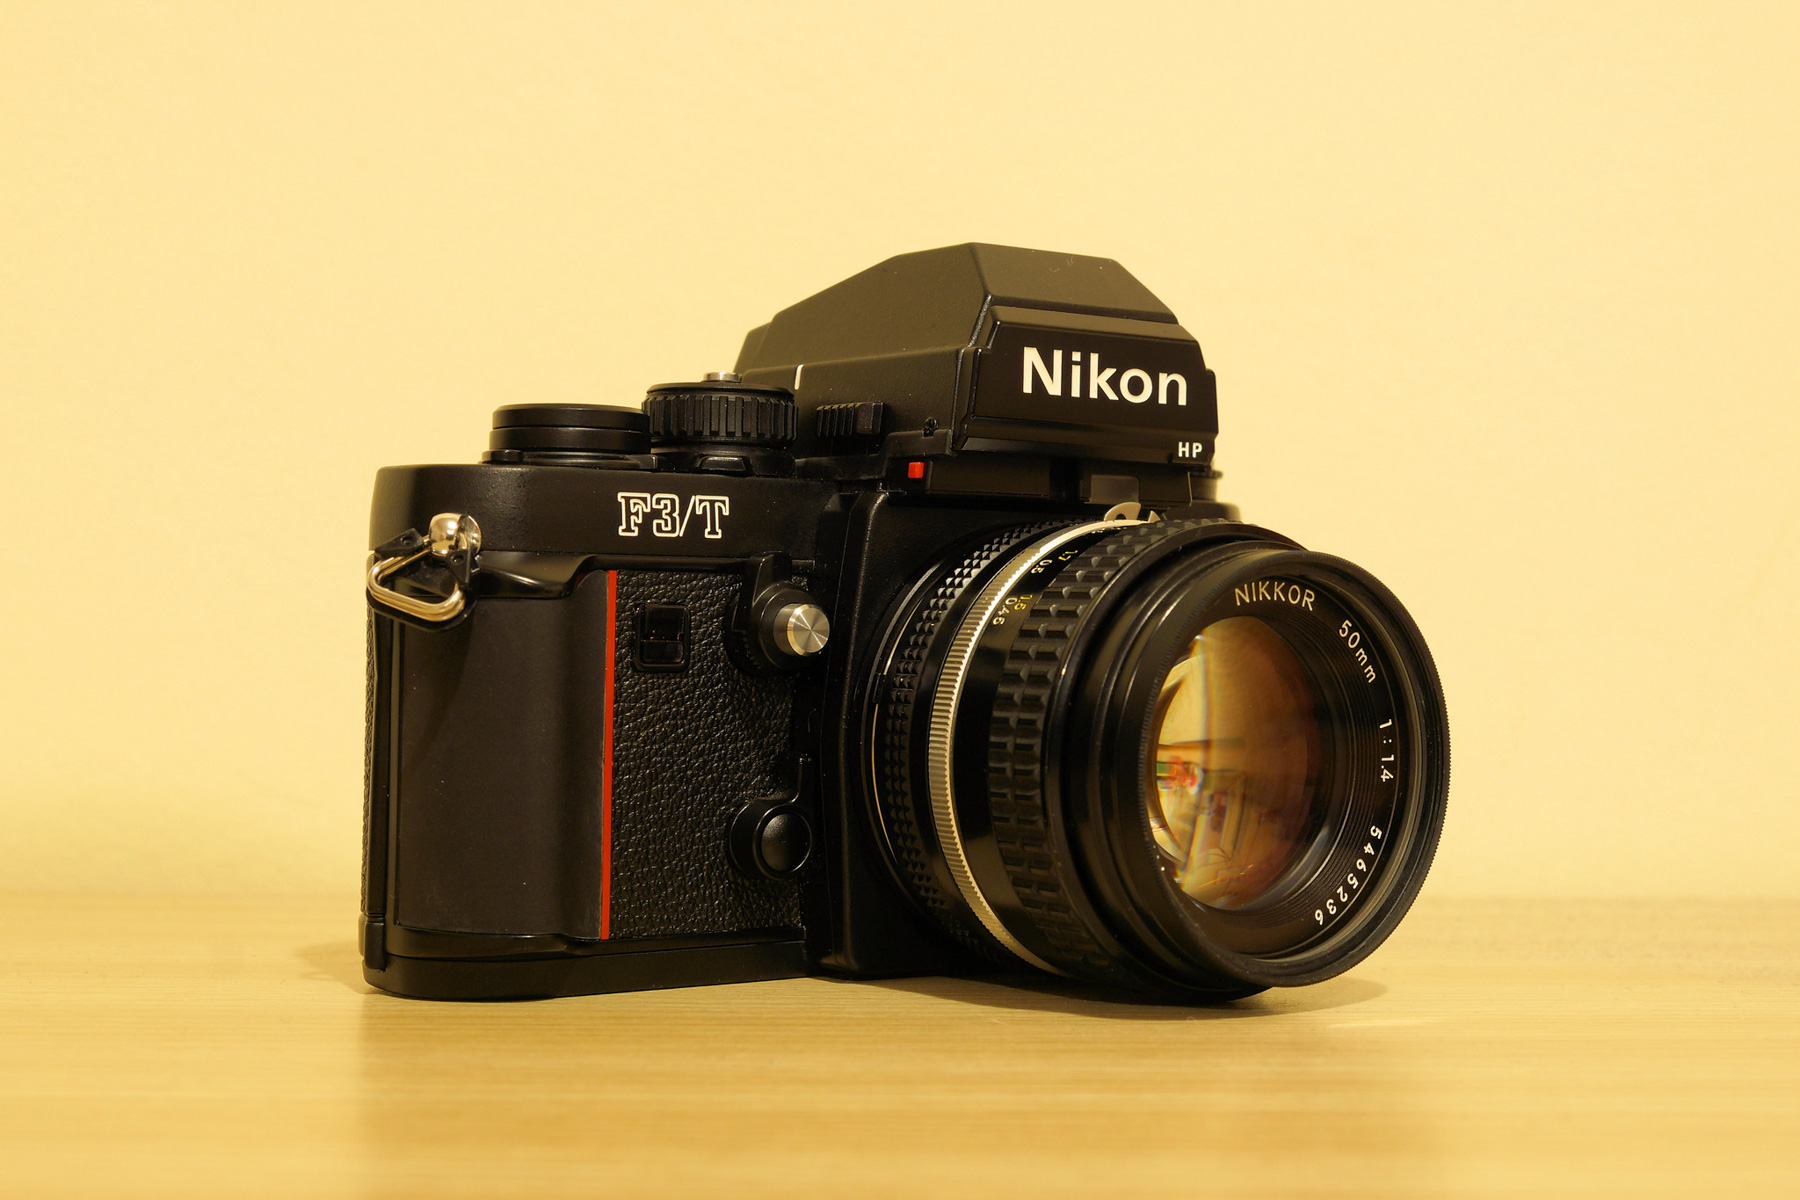 My Nikon F3/T and Nikkor 50mm f/1.4 AI-S